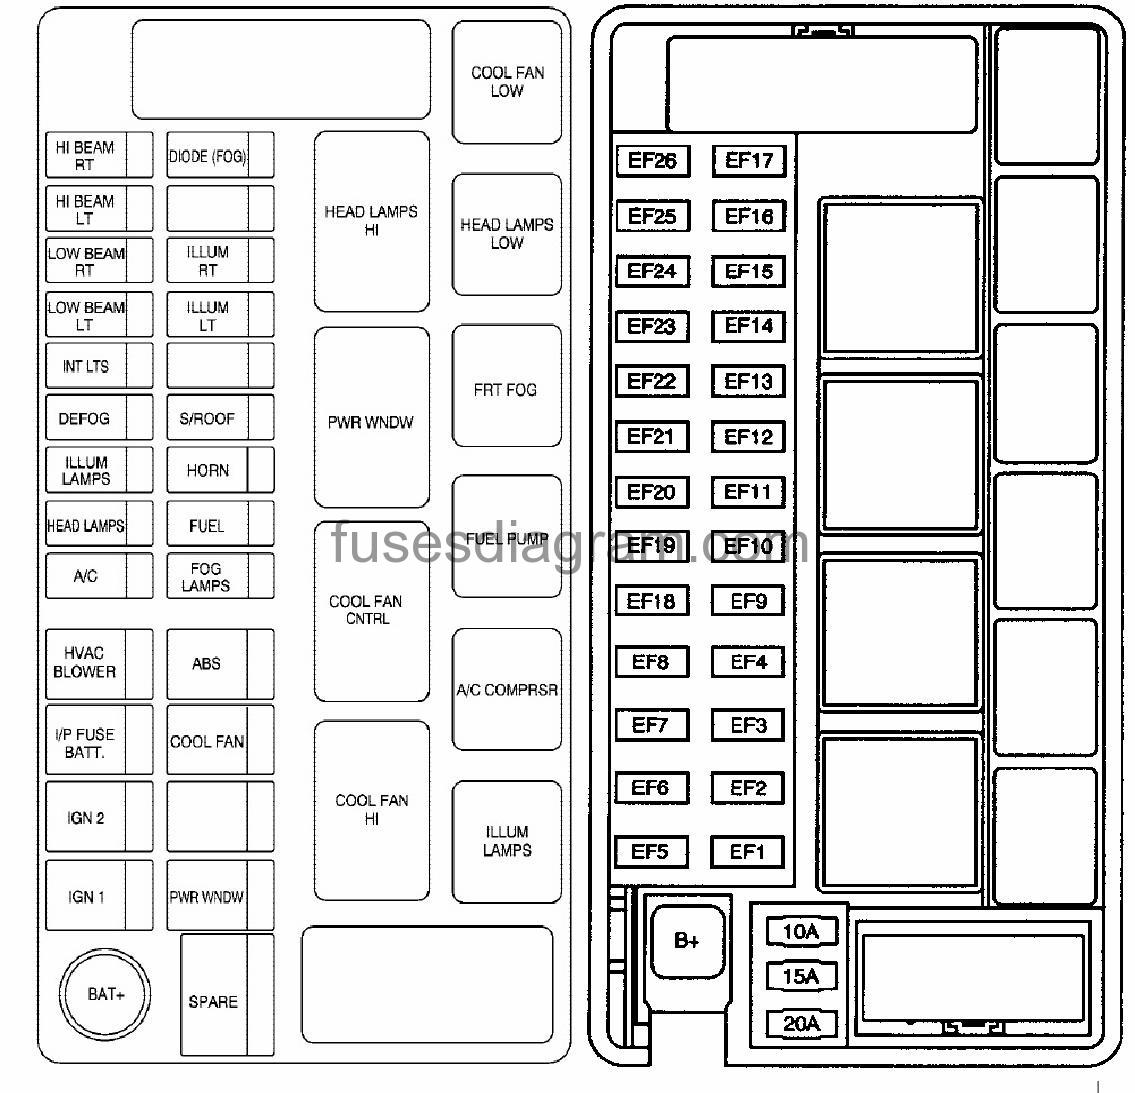 hight resolution of 2009 chevy aveo fuse box wiring schematic data 2009 chevrolet aveo fuse box 2009 chevy aveo fuse box